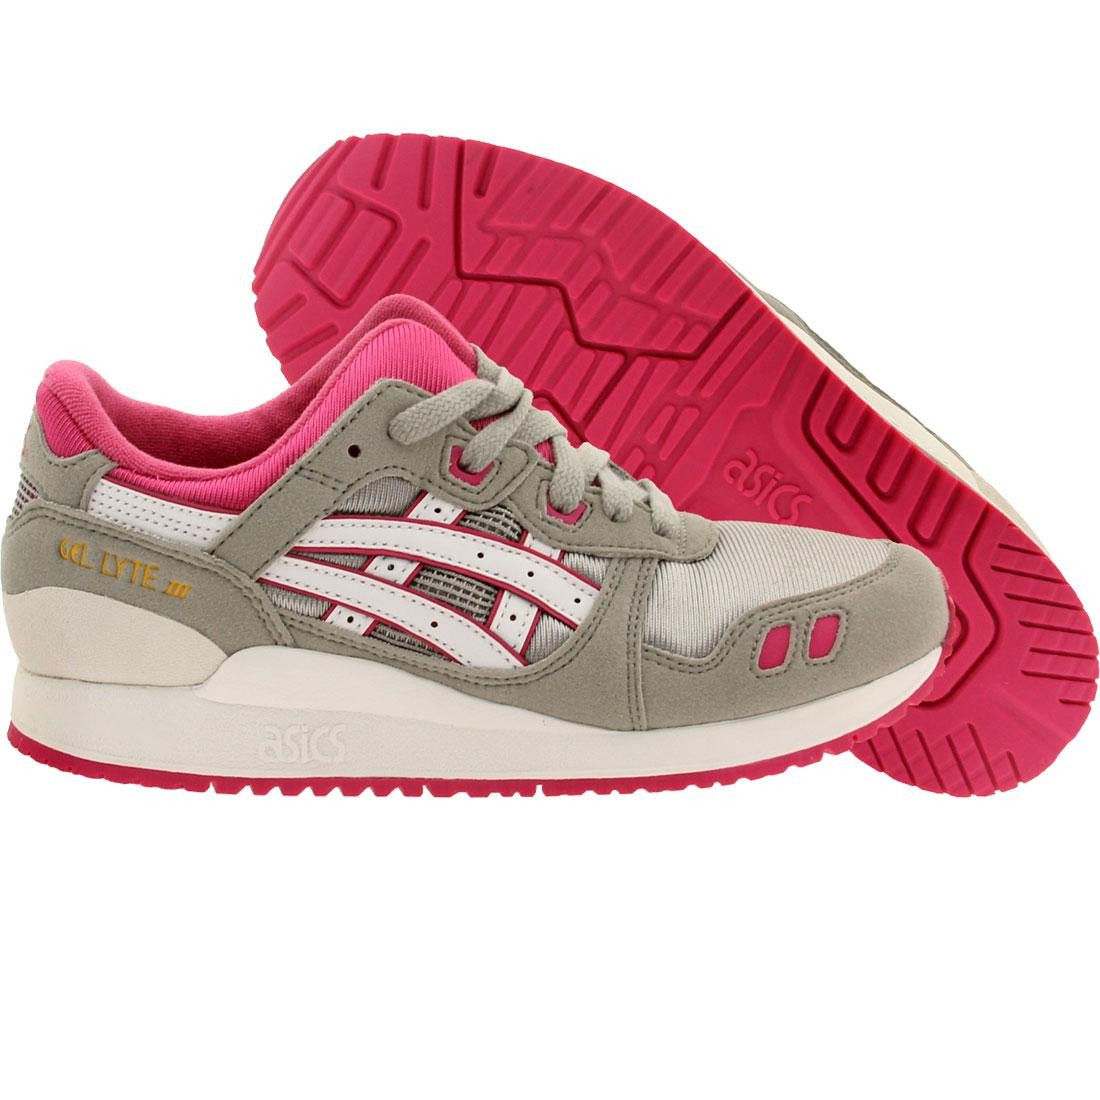 【海外限定】アシックス GRAY灰色 グレイ スニーカー 靴 【 ASICS GREY TIGER BIG KIDS GEL LYTE III GS GRAY LIGHT WHITE 】